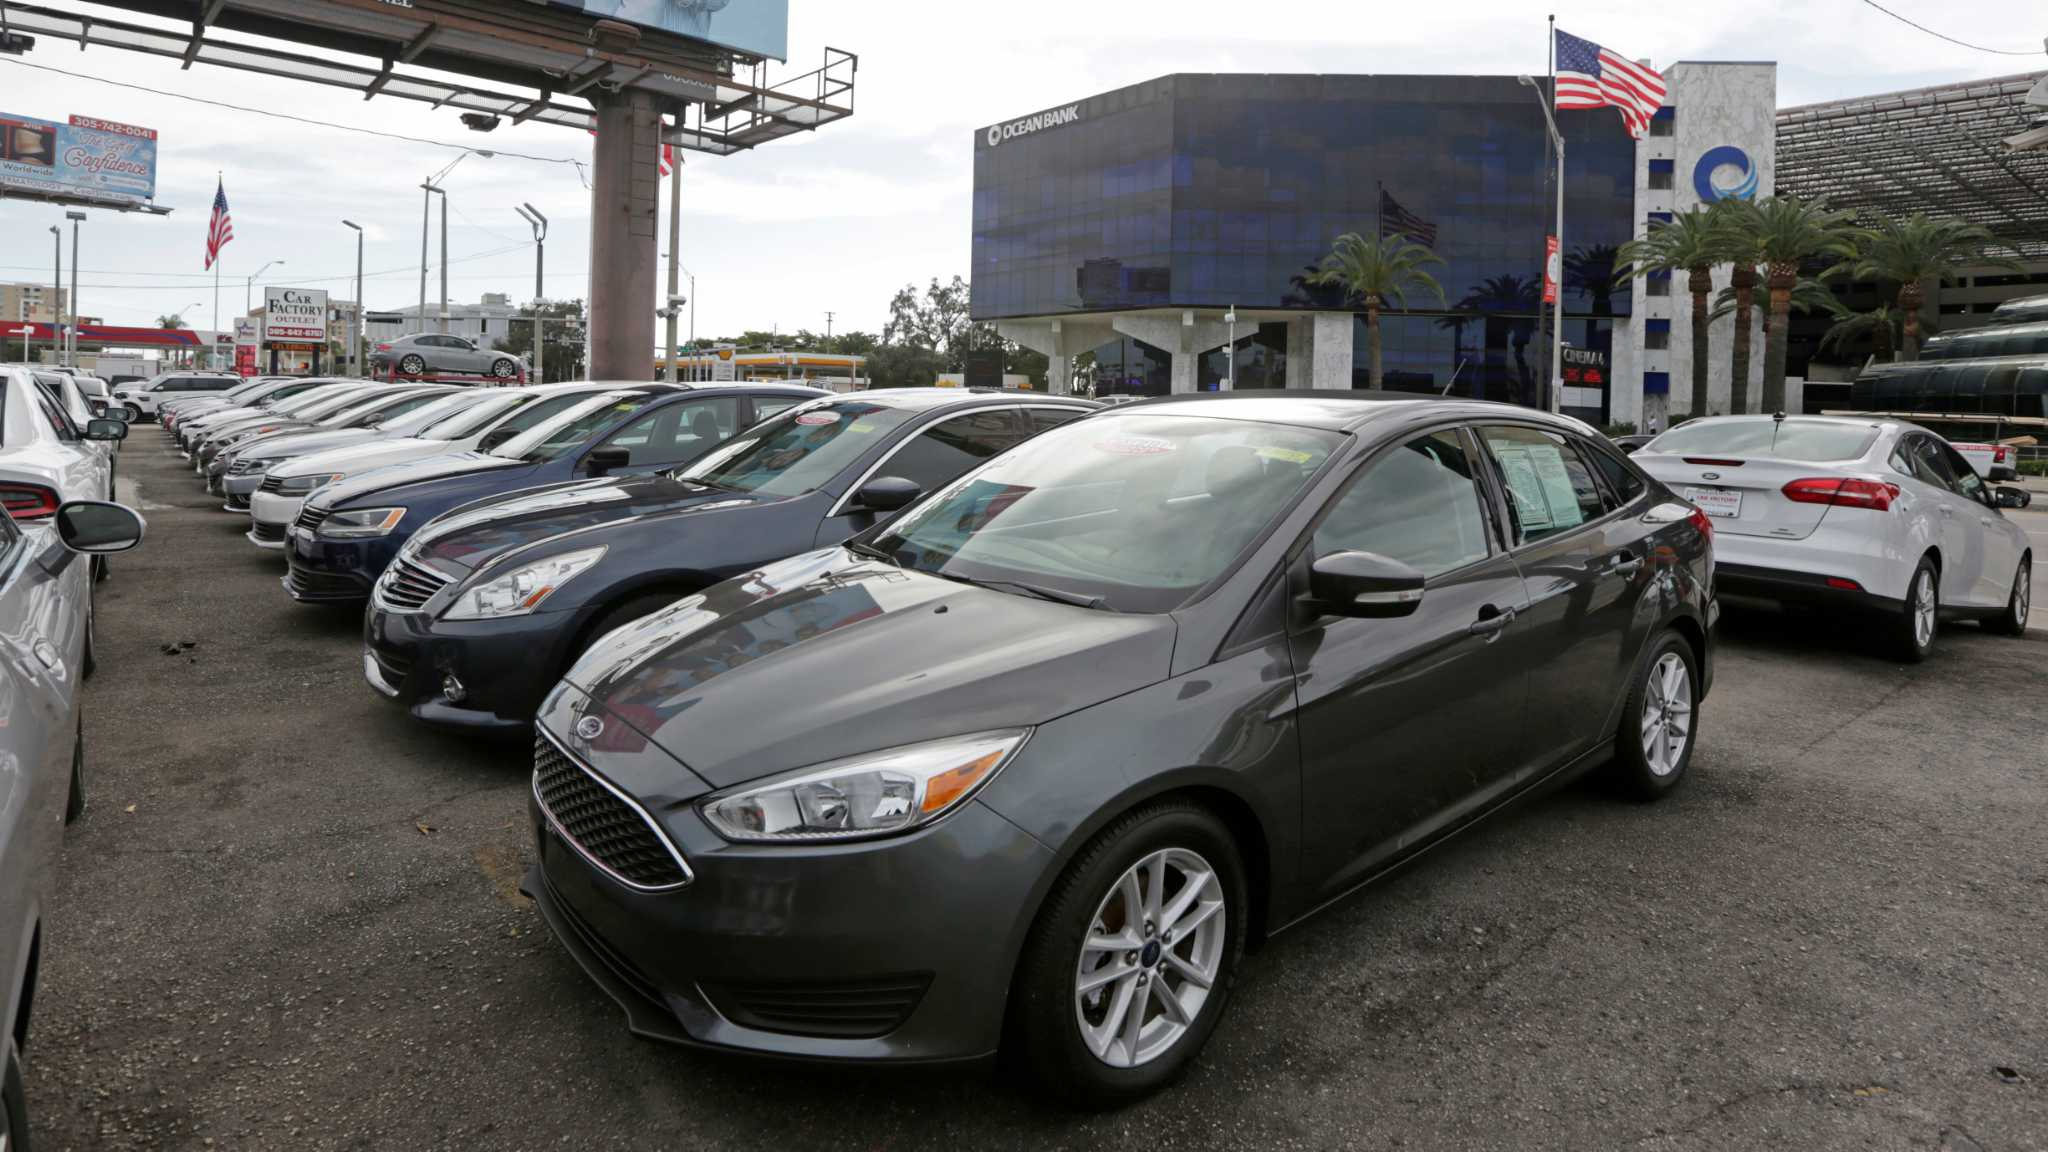 Used cars give ers options Times Union